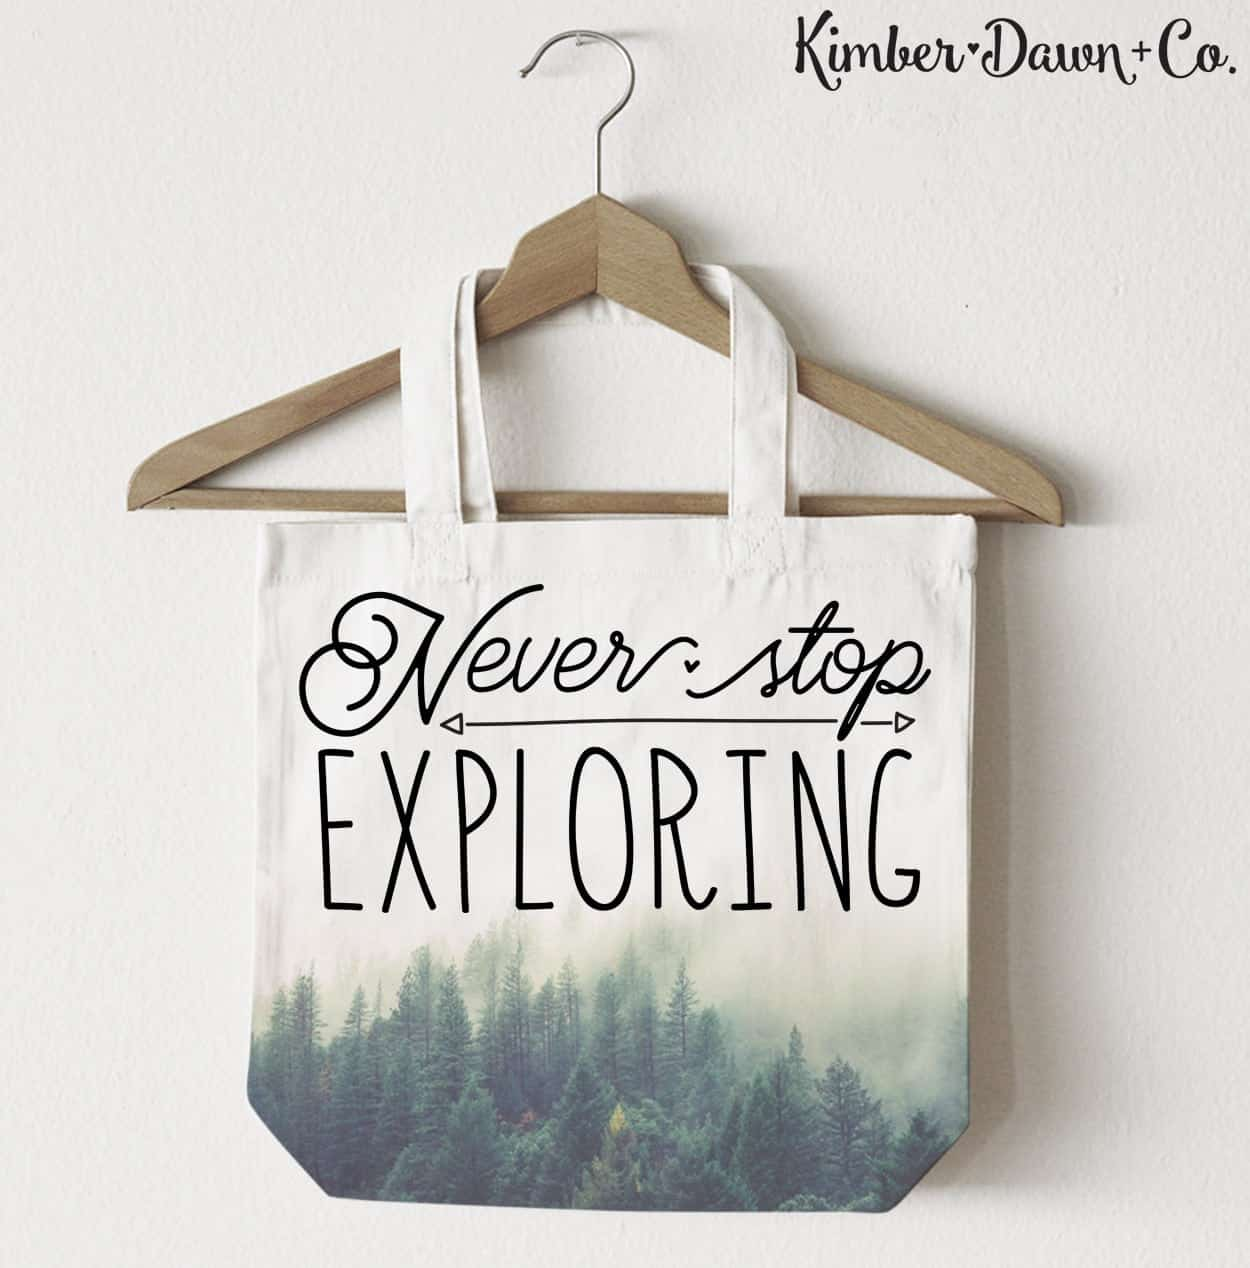 Never Stop Exporing - Free Cut File for Silhouette CAMEO + Cricut crafts